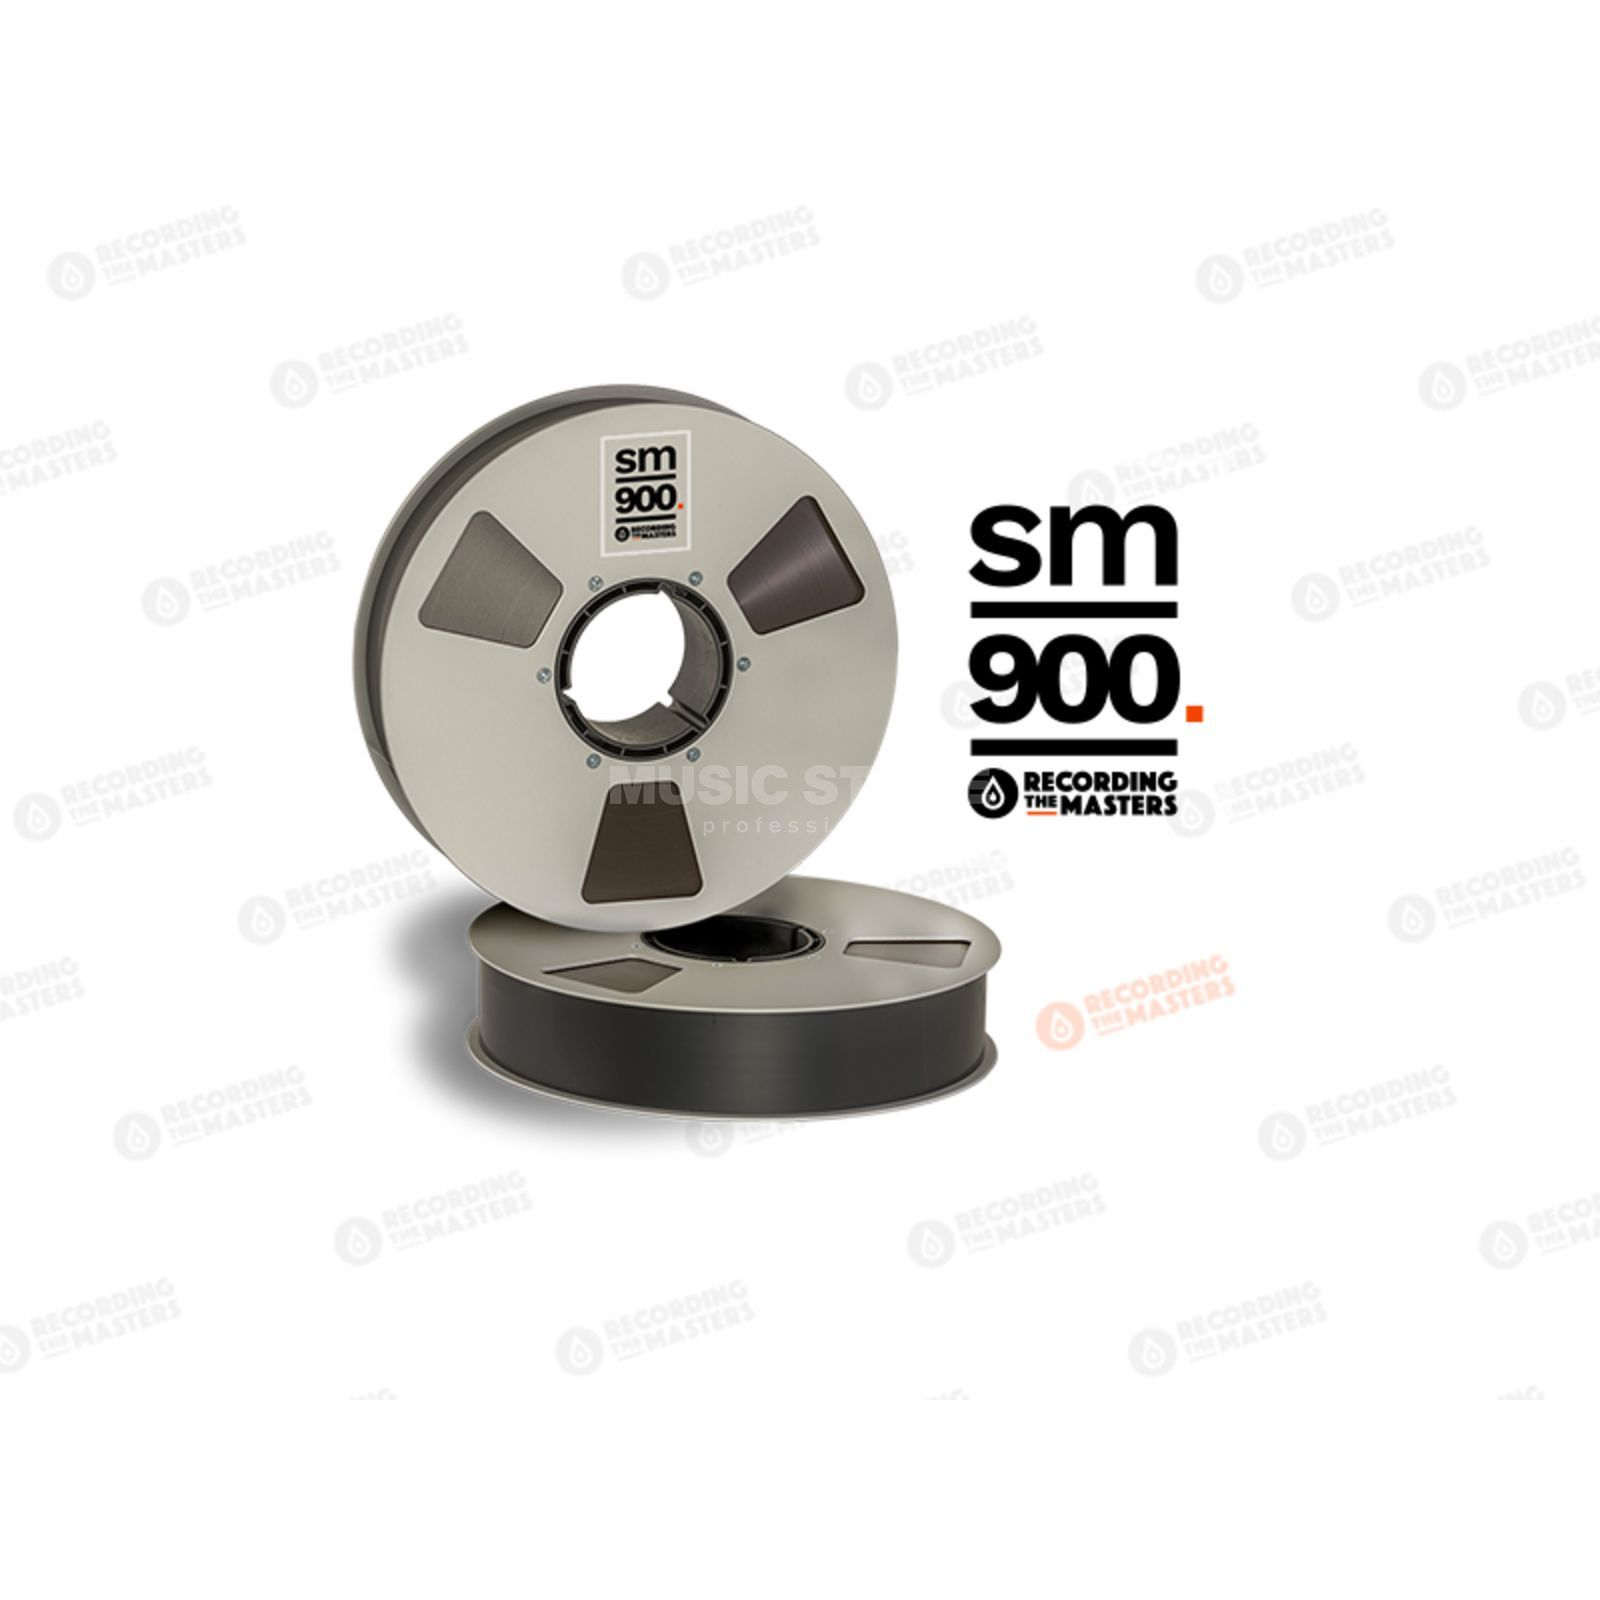 "Recording The Masters SM900 2"" 762m Analog Band NAB-Spule /Metal Reel 27cm Immagine prodotto"